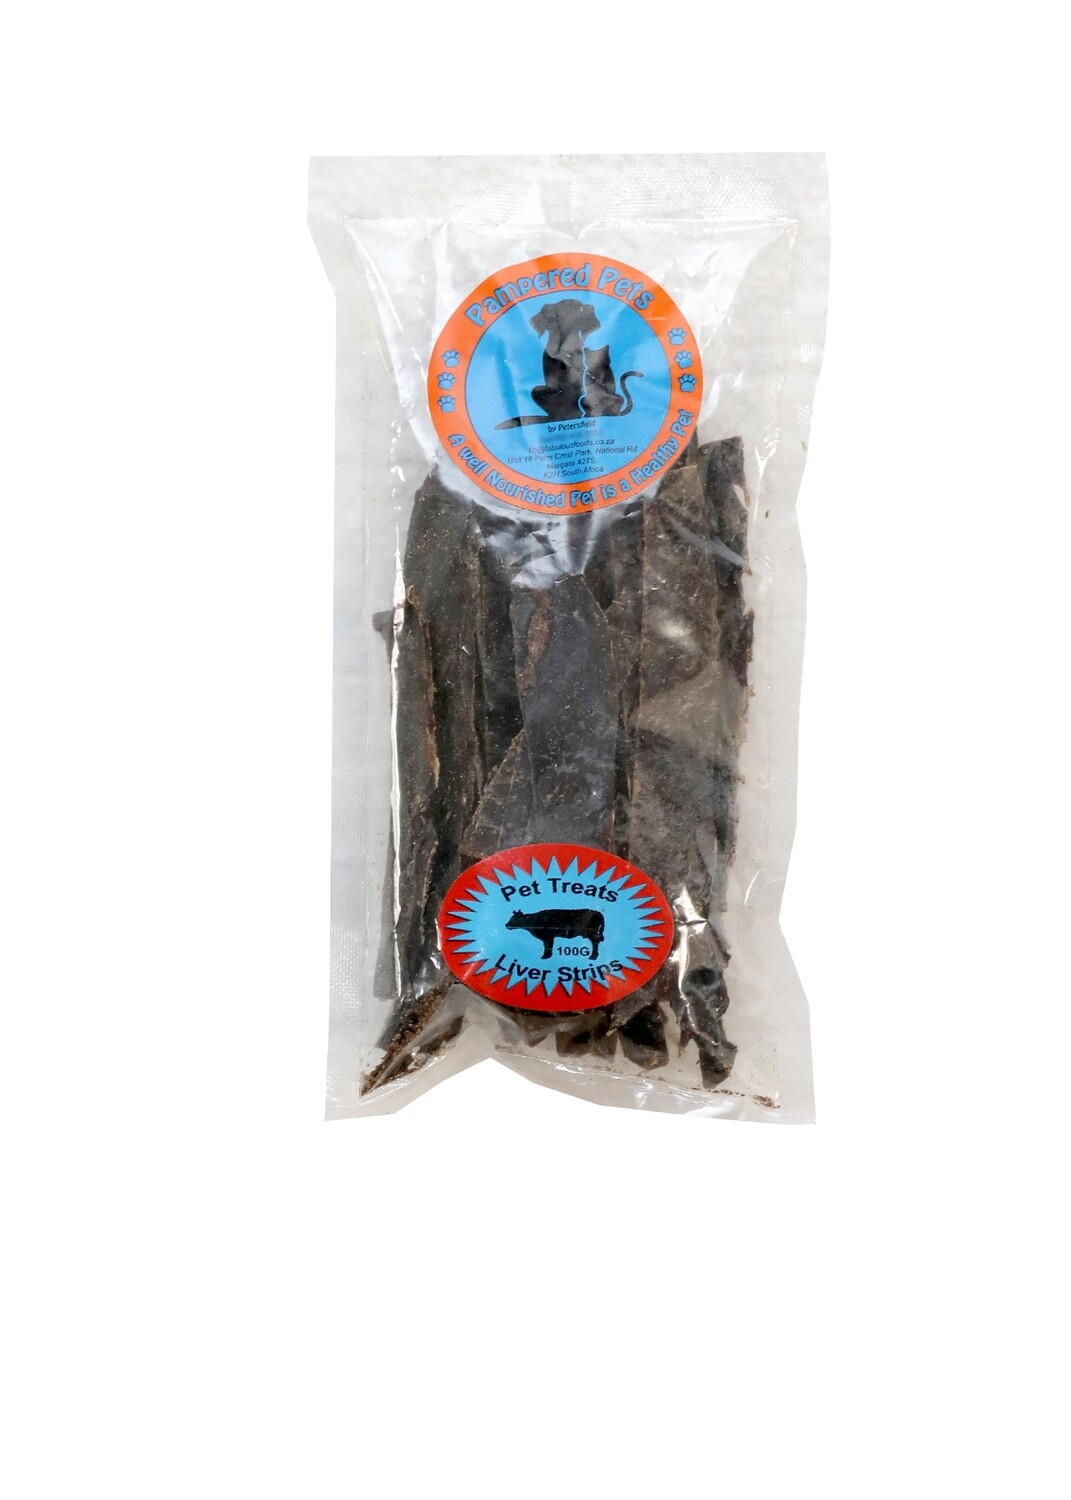 Liver Strips (Treats for Pets)